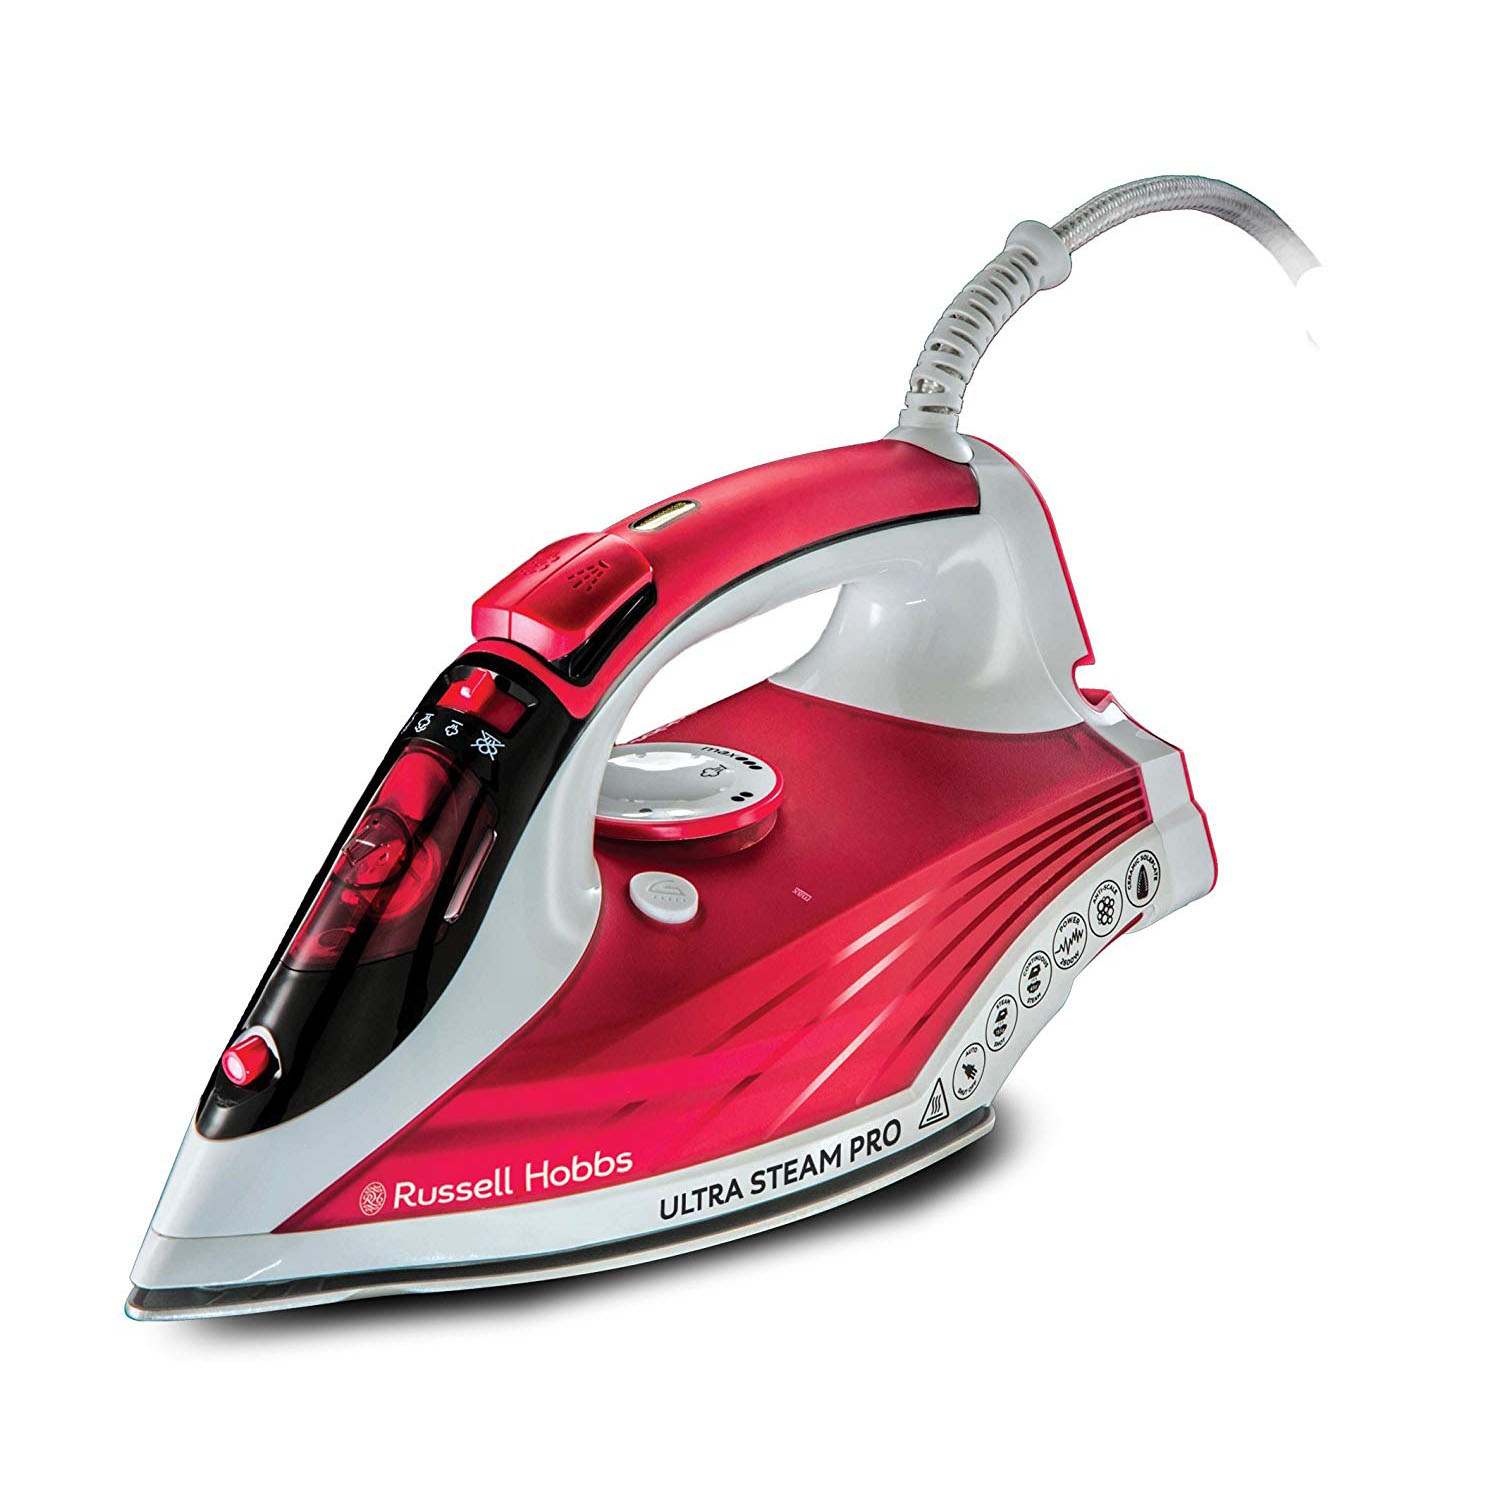 Russell Hobbs 23990 Ultra Steam Pro Iron